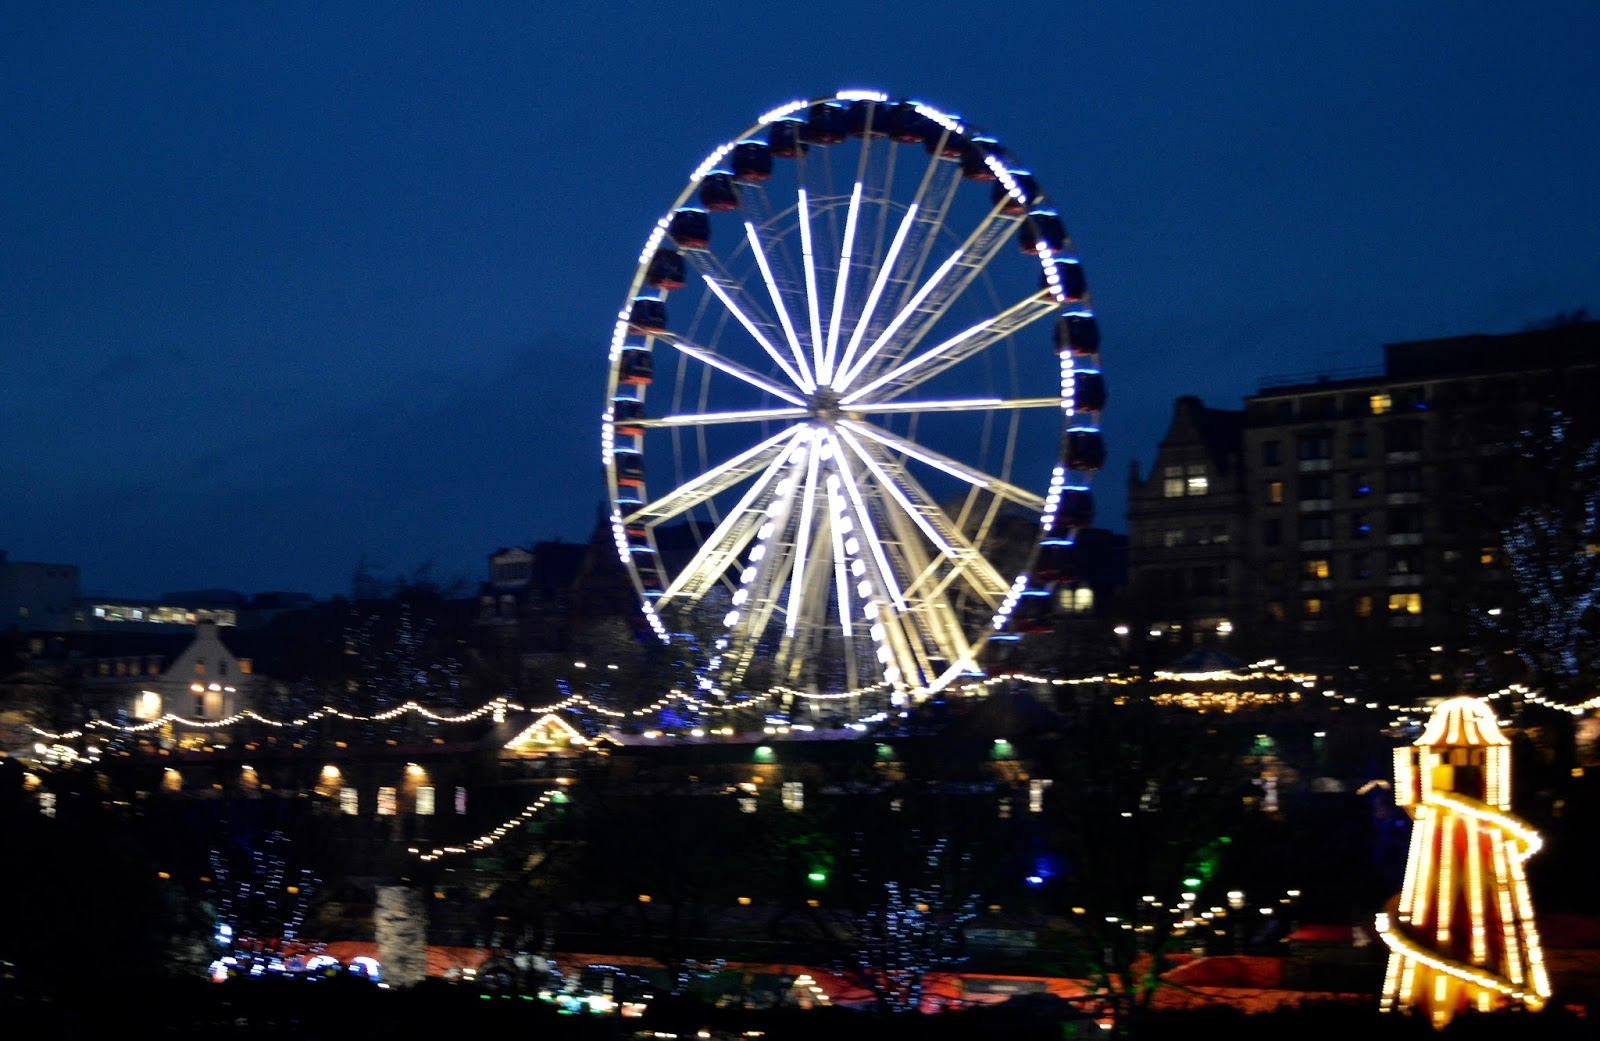 10 Reasons to Visit Edinburgh in December - Ferris Wheel